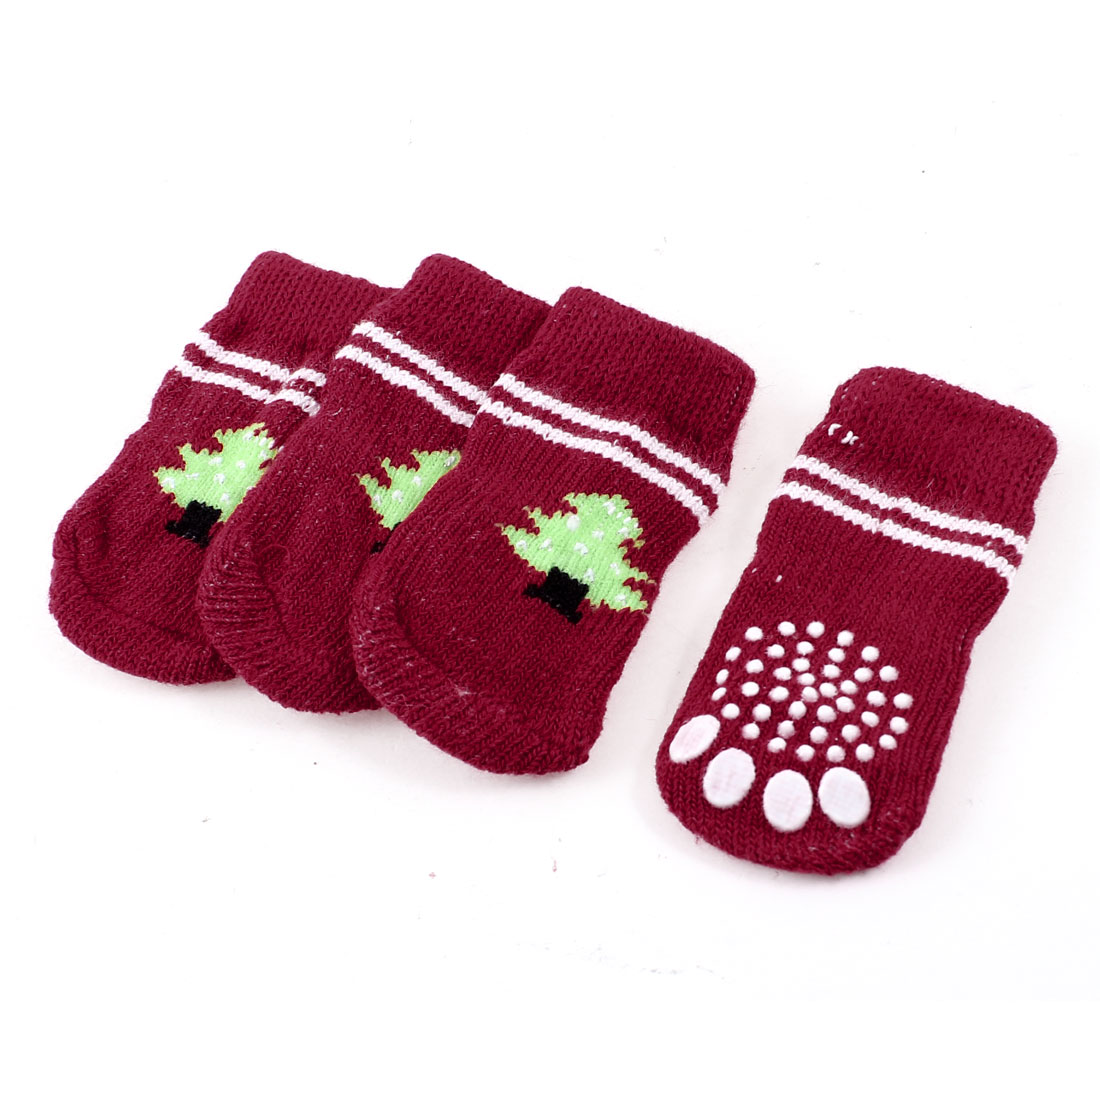 2 Pairs Red Nonslip Christmas Tree Printed Acrylic Doggie Puppy Pet Socks Size S